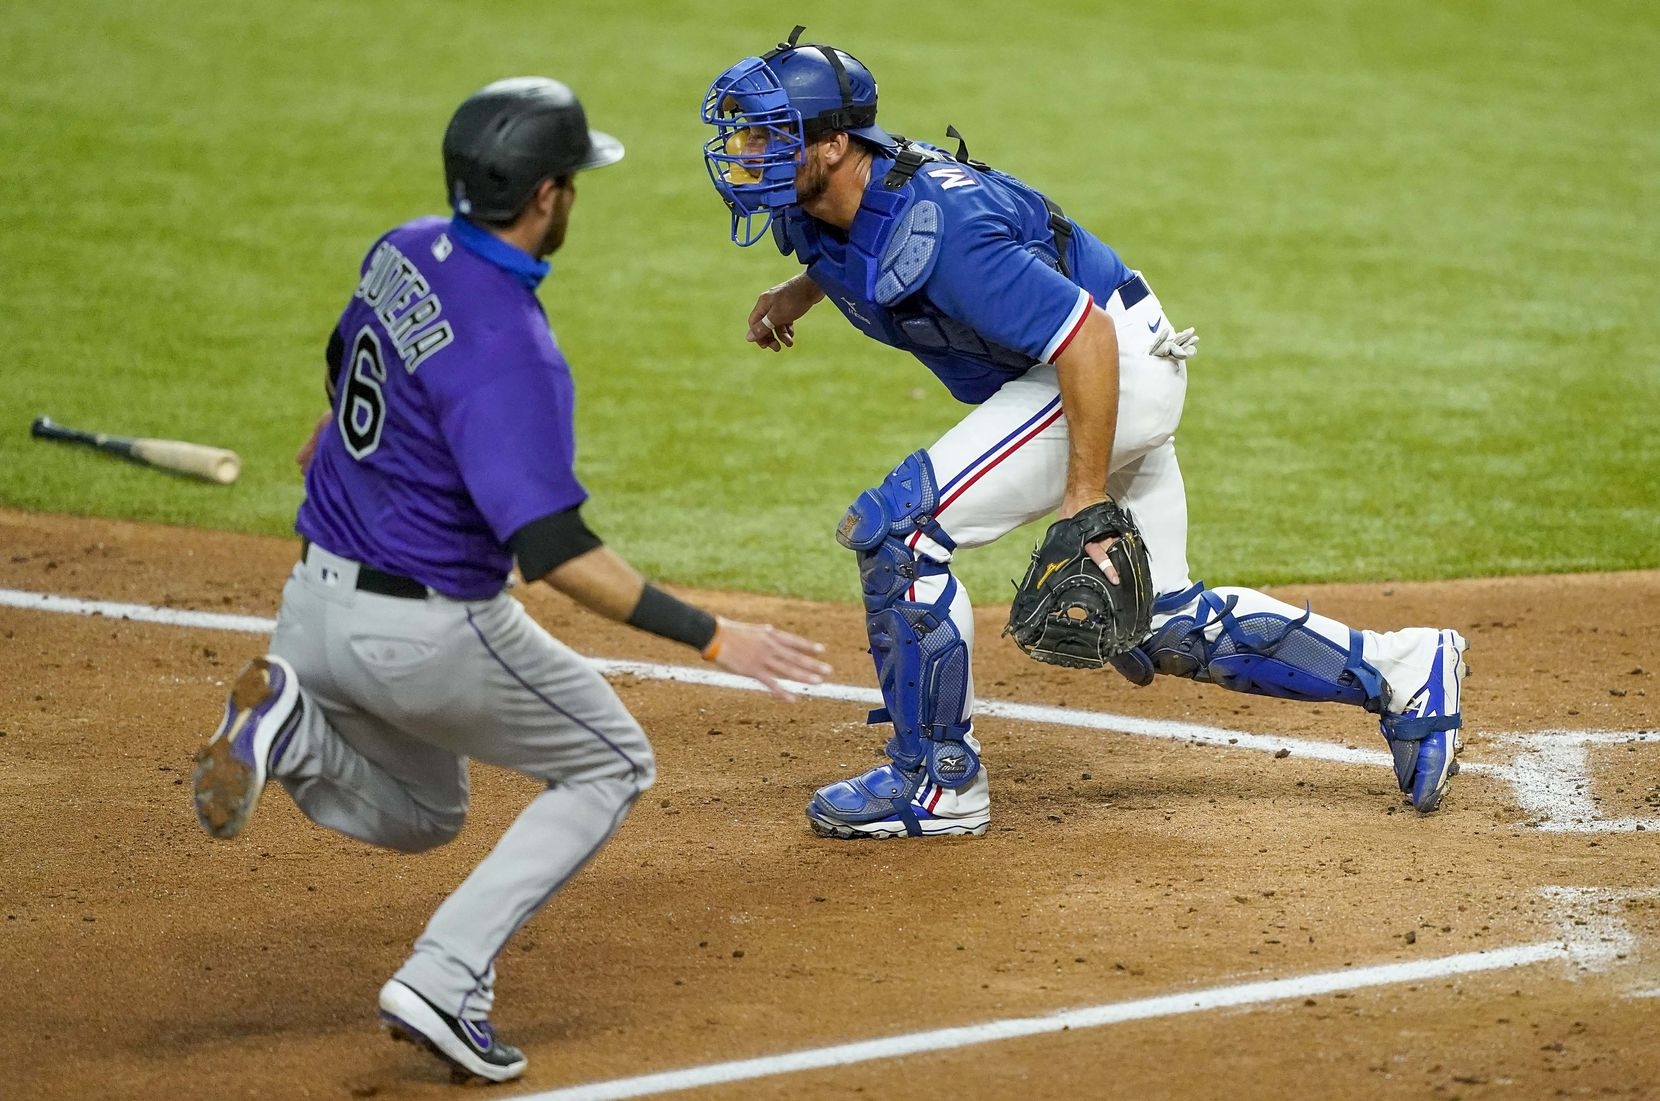 Colorado Rockies catcher Drew Butera scores past Texas Rangers catcher Jeff Mathis during the third inning of an exhibition game at Globe Life Field on Wednesday, July 22, 2020. (Smiley N. Pool/The Dallas Morning News)